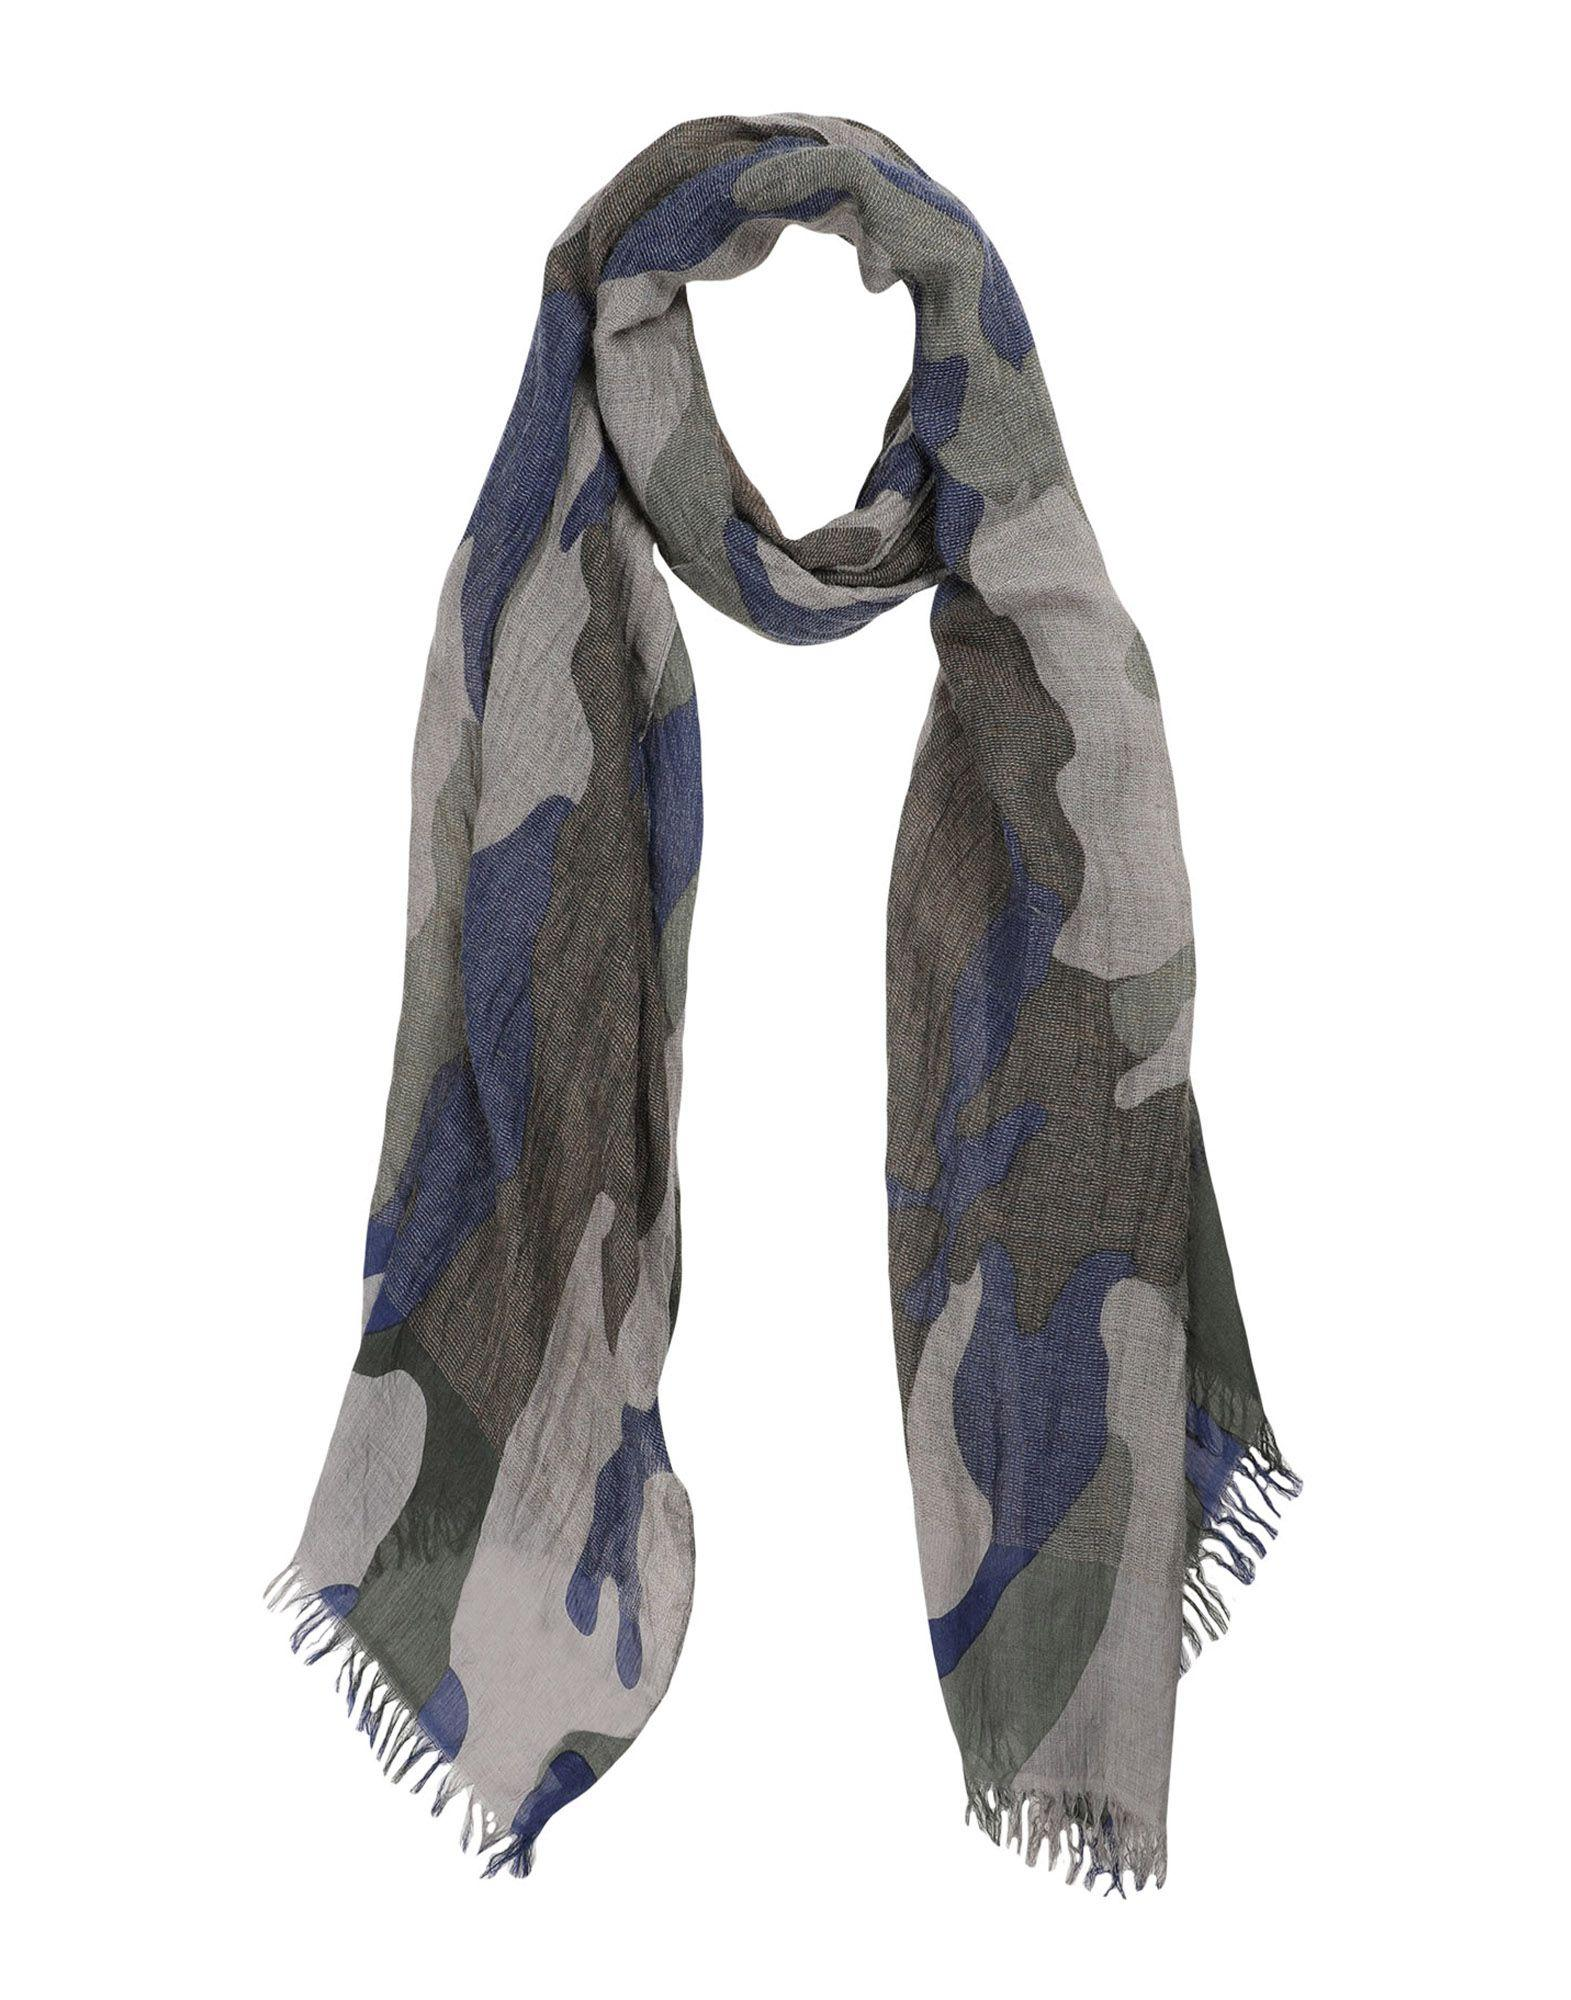 Emporio Armani Oblong Scarves In Military Green